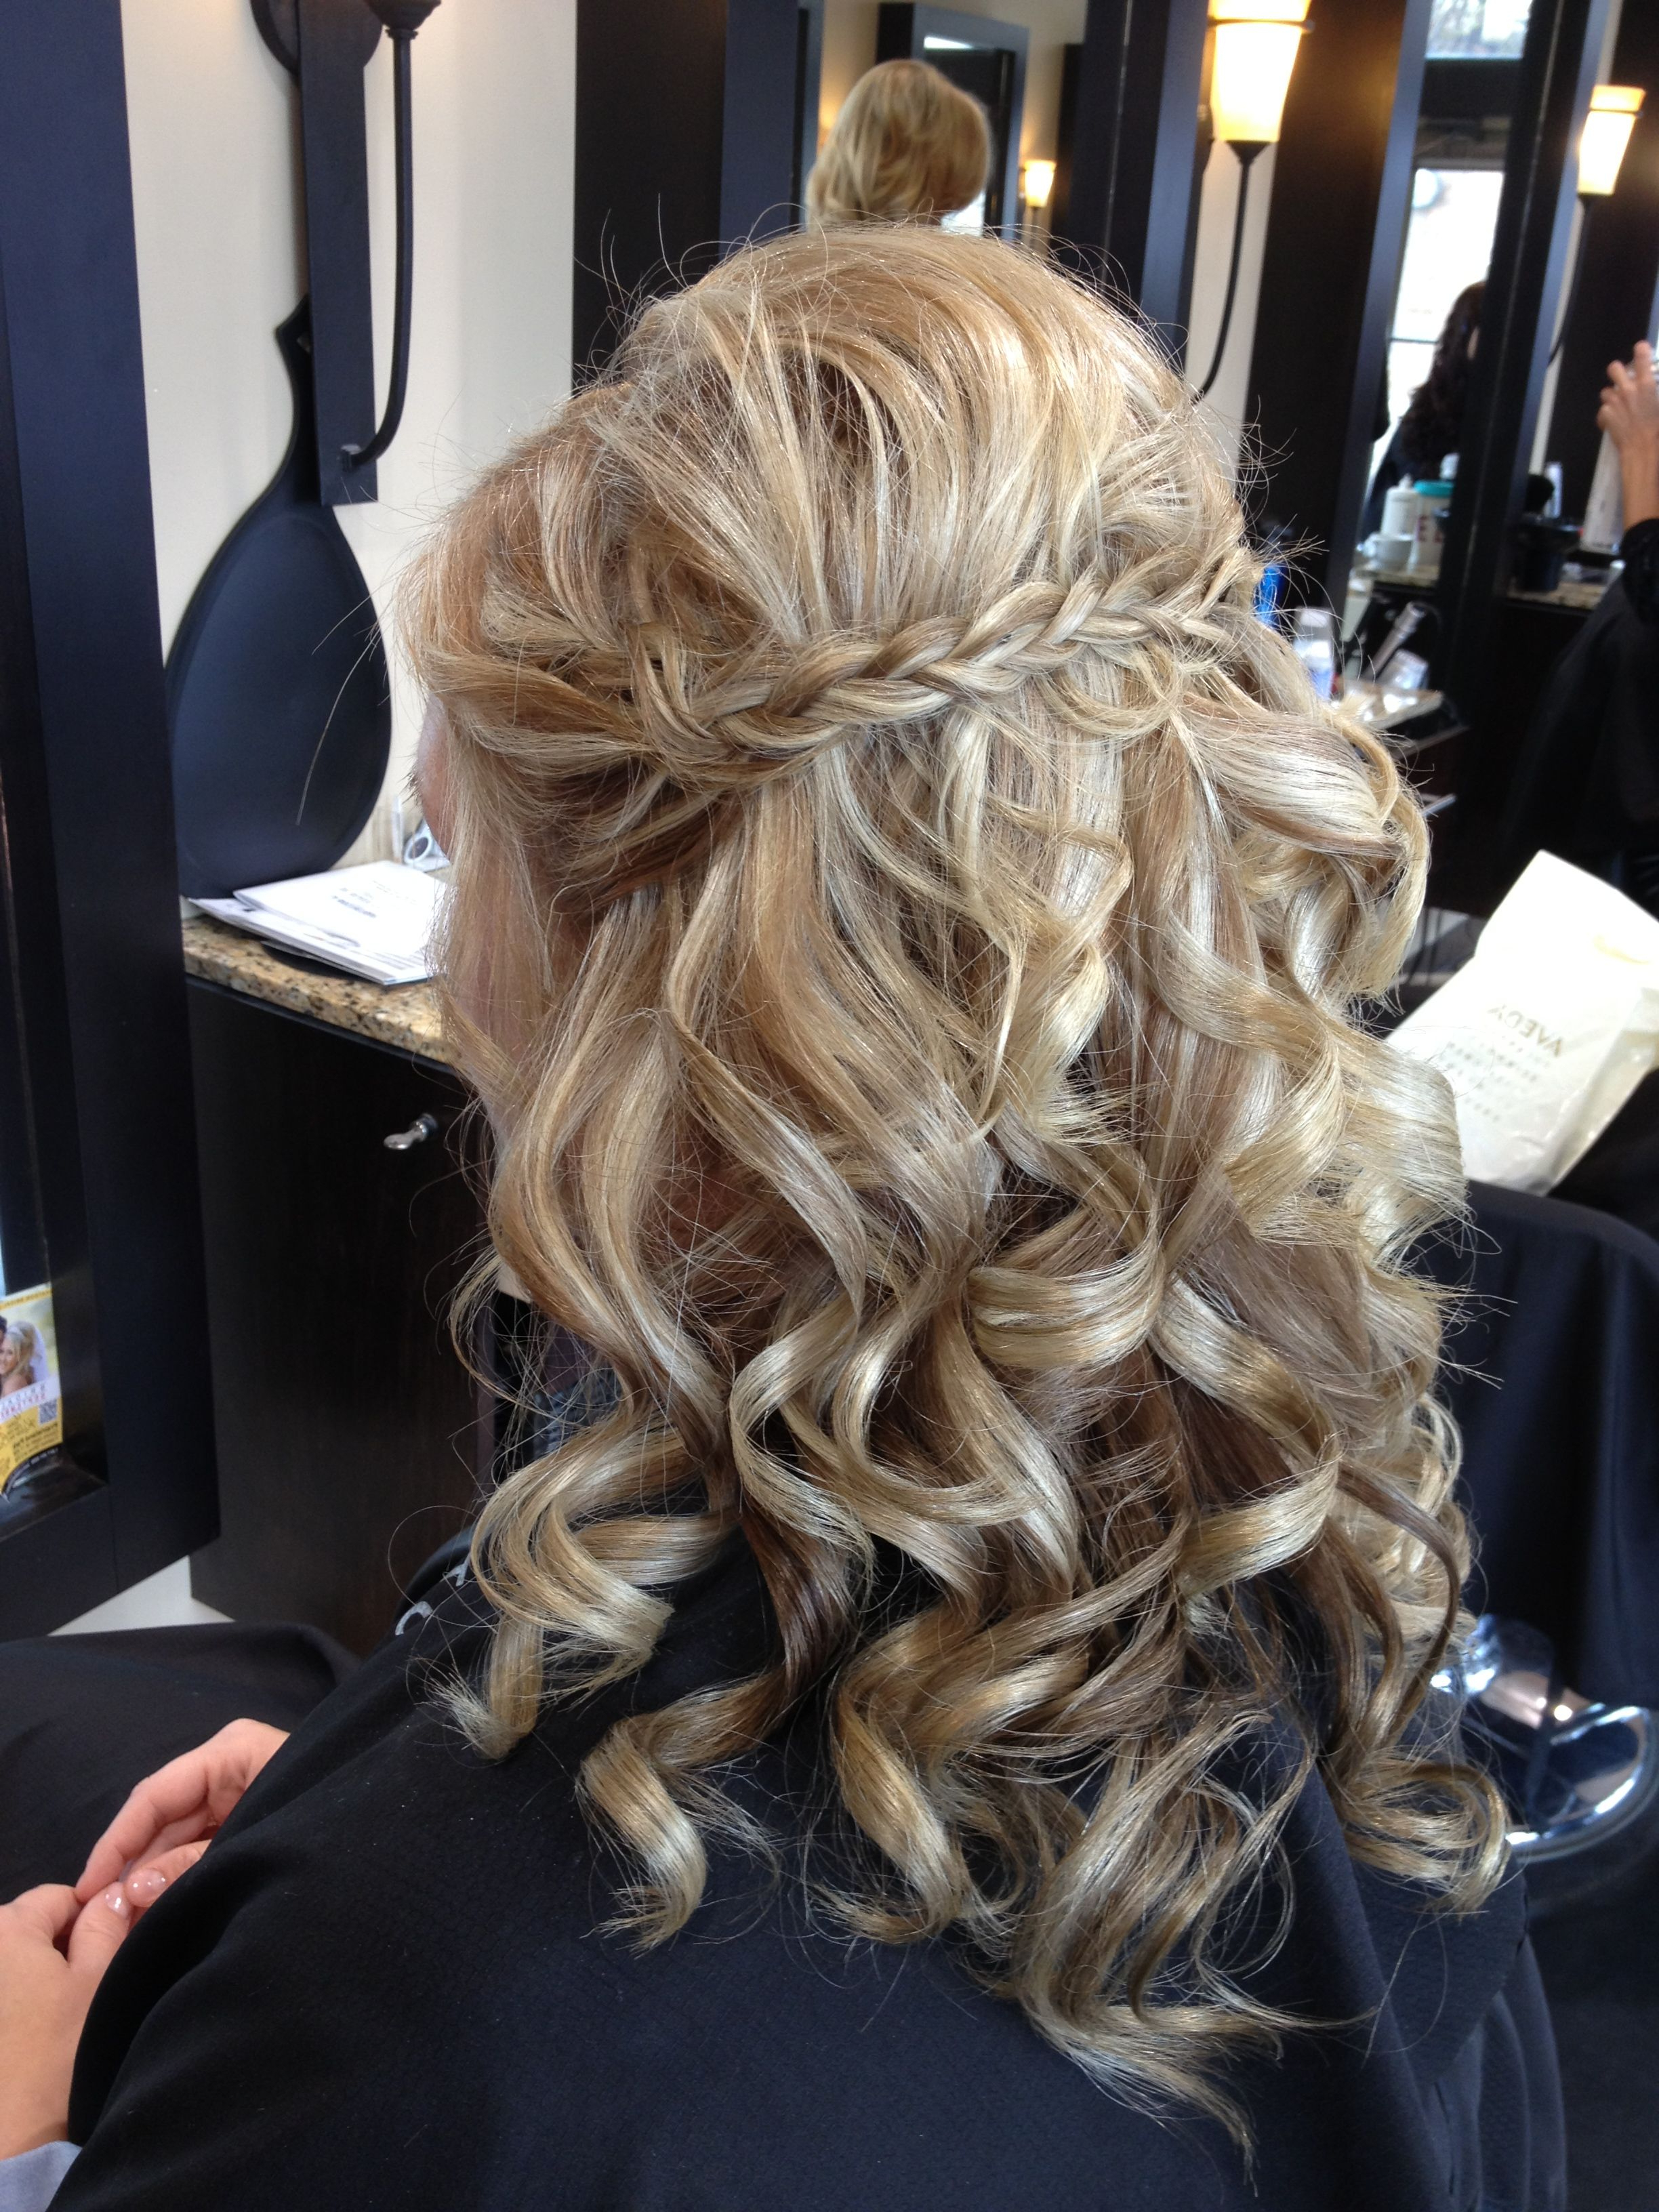 Wedding Hairstyles In 2019 (Gallery 4 of 20)